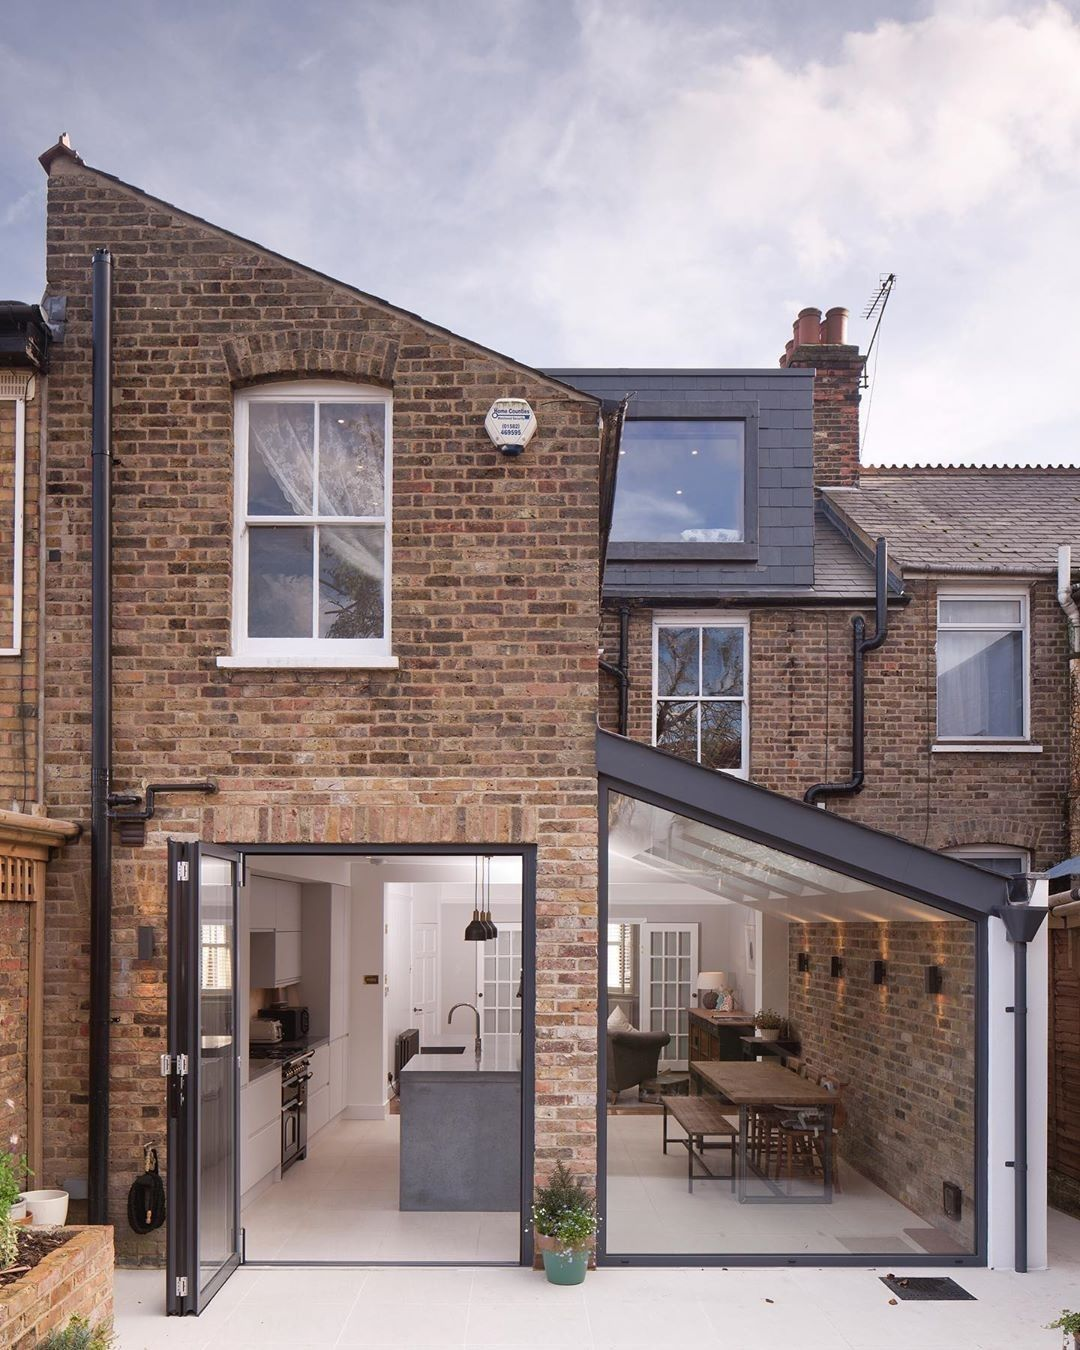 """UK Architecture on Instagram """"Amazing rear extension to this Victorian Terrace ment what you think below👇🏻 📍Hertfordshire  Designed by gazeyarchitects Owner …"""""""